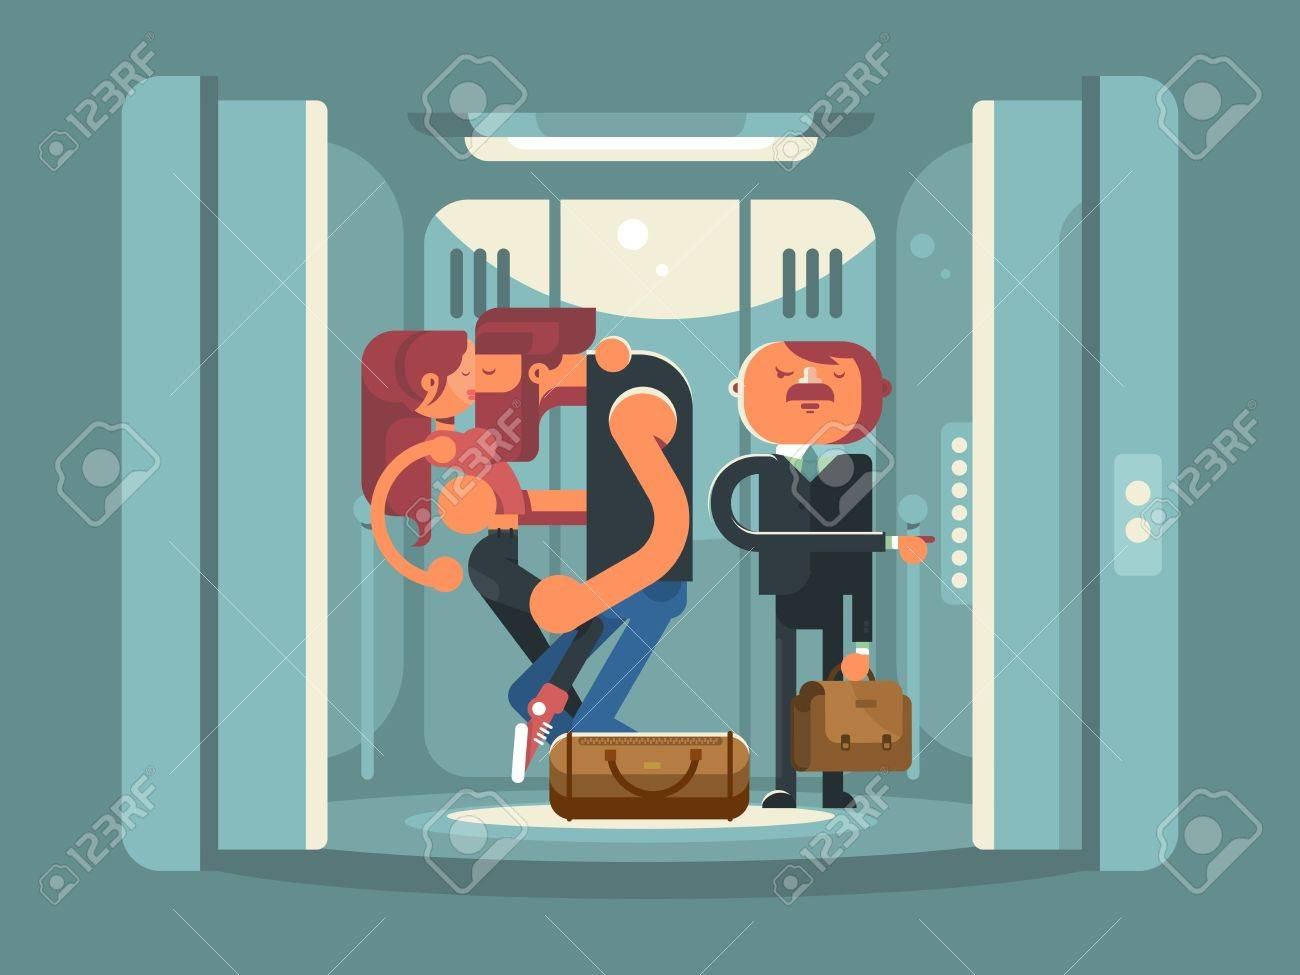 people in elevator clipart. couple kissing in the elevator. people man and woman kiss. standing businessman suit elevator clipart